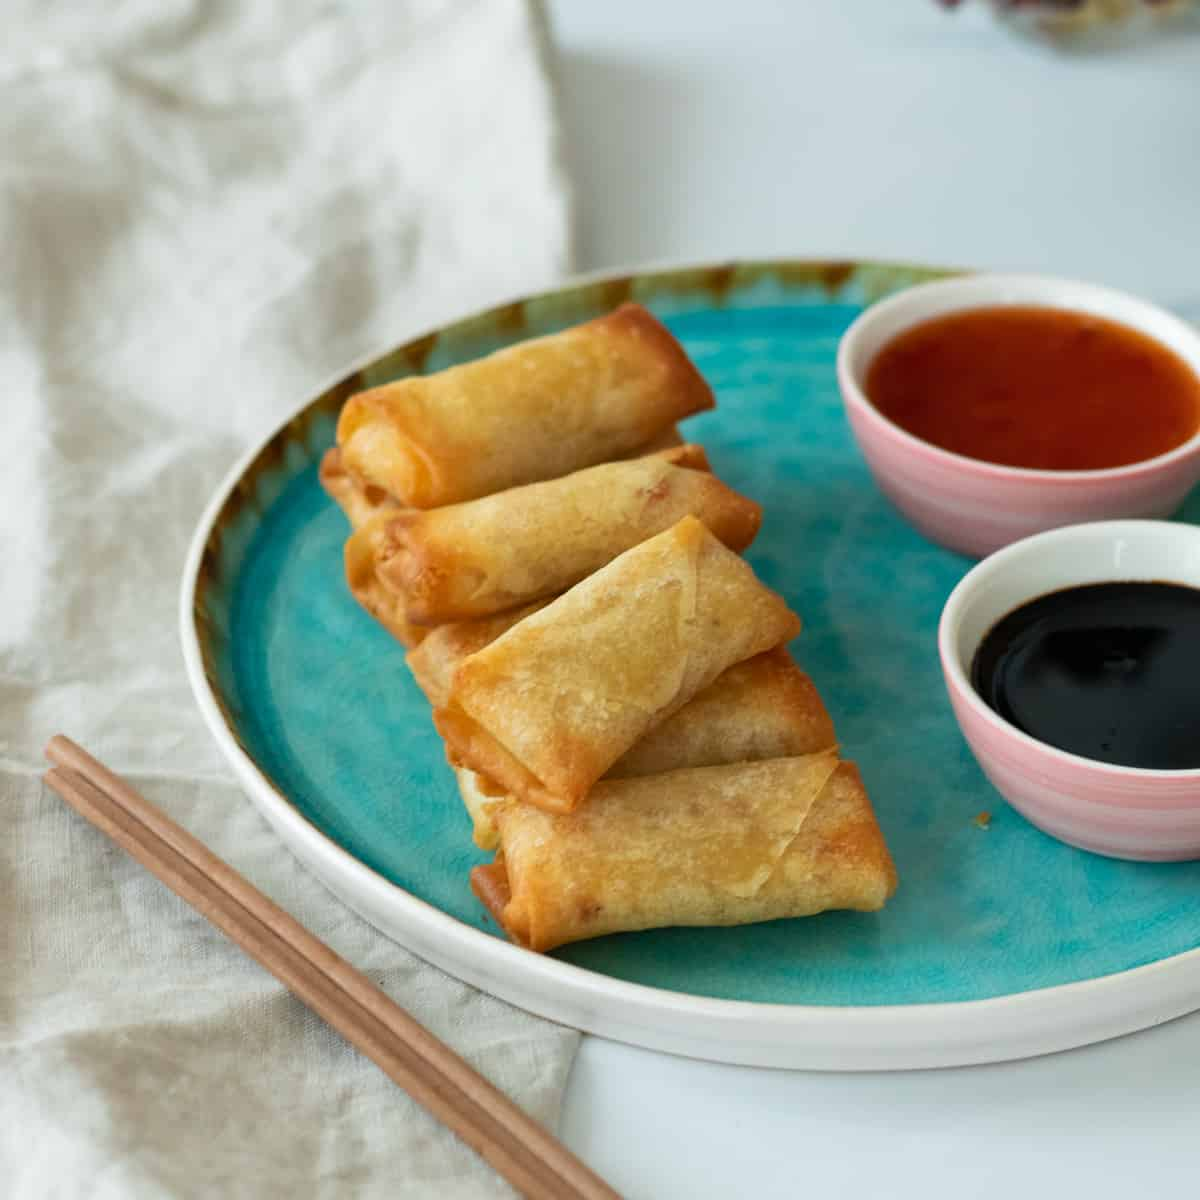 air fryer spring rolls on a blue plate next to two sauces